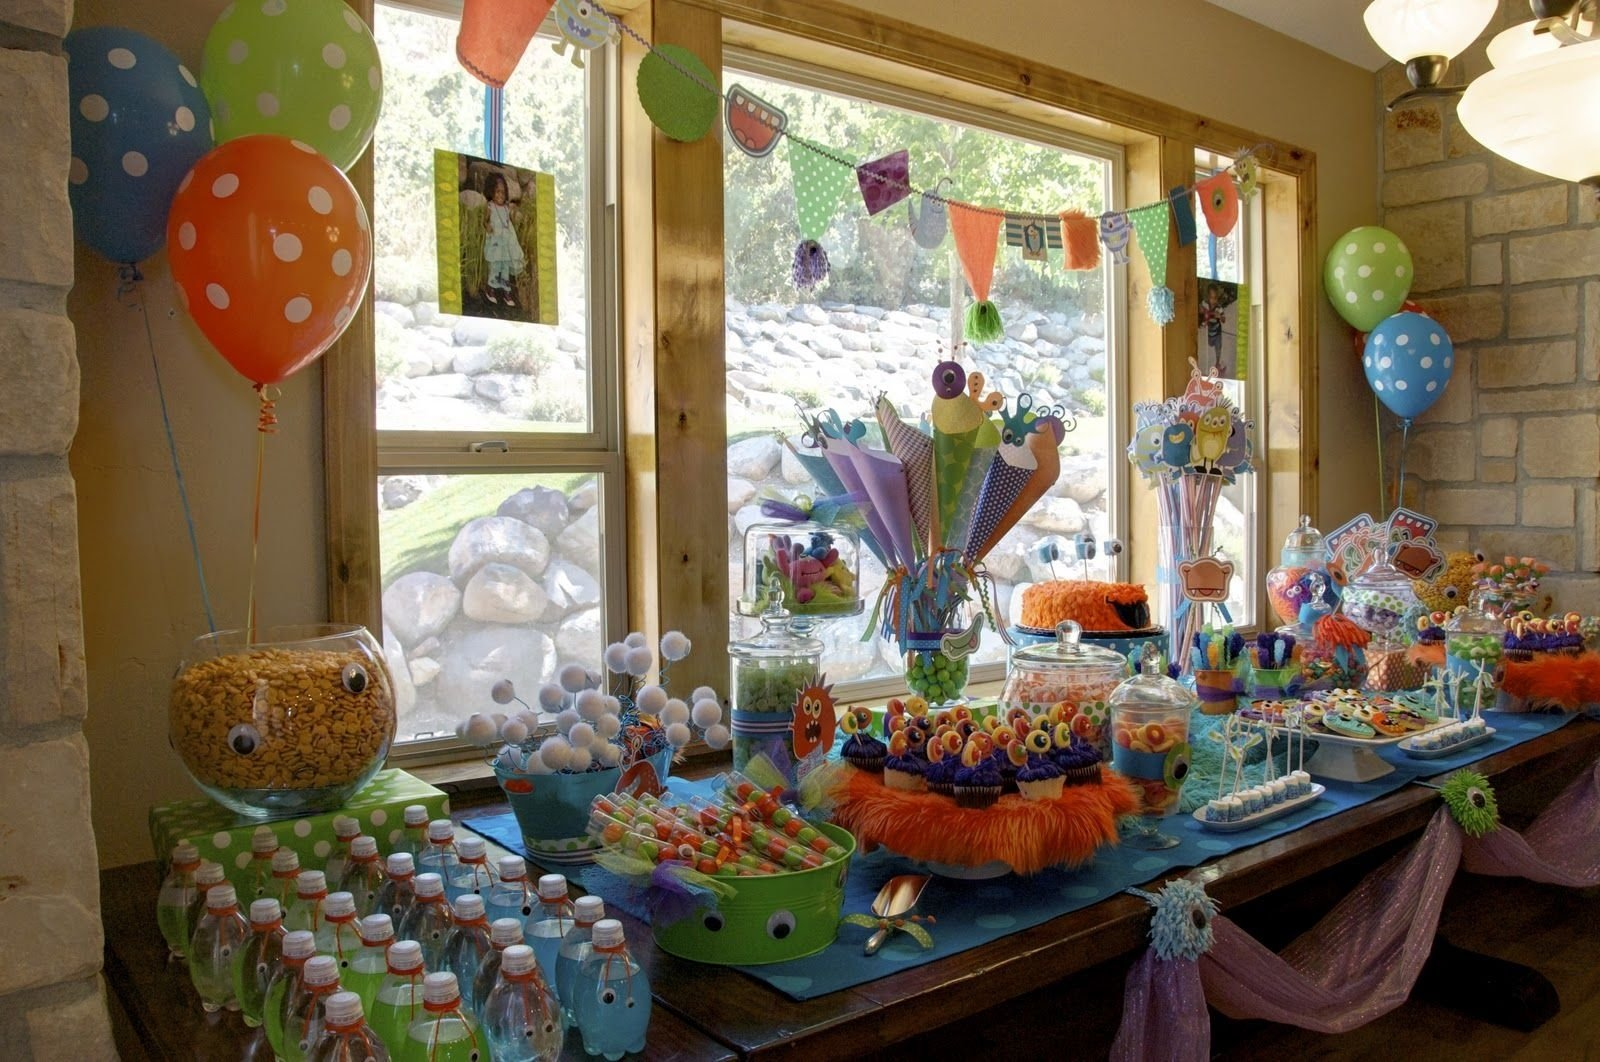 10 Amazing Good Birthday Party Ideas For 14 Year Olds my friends birthday is in the winter and she wanteaes cause shes 22 2020